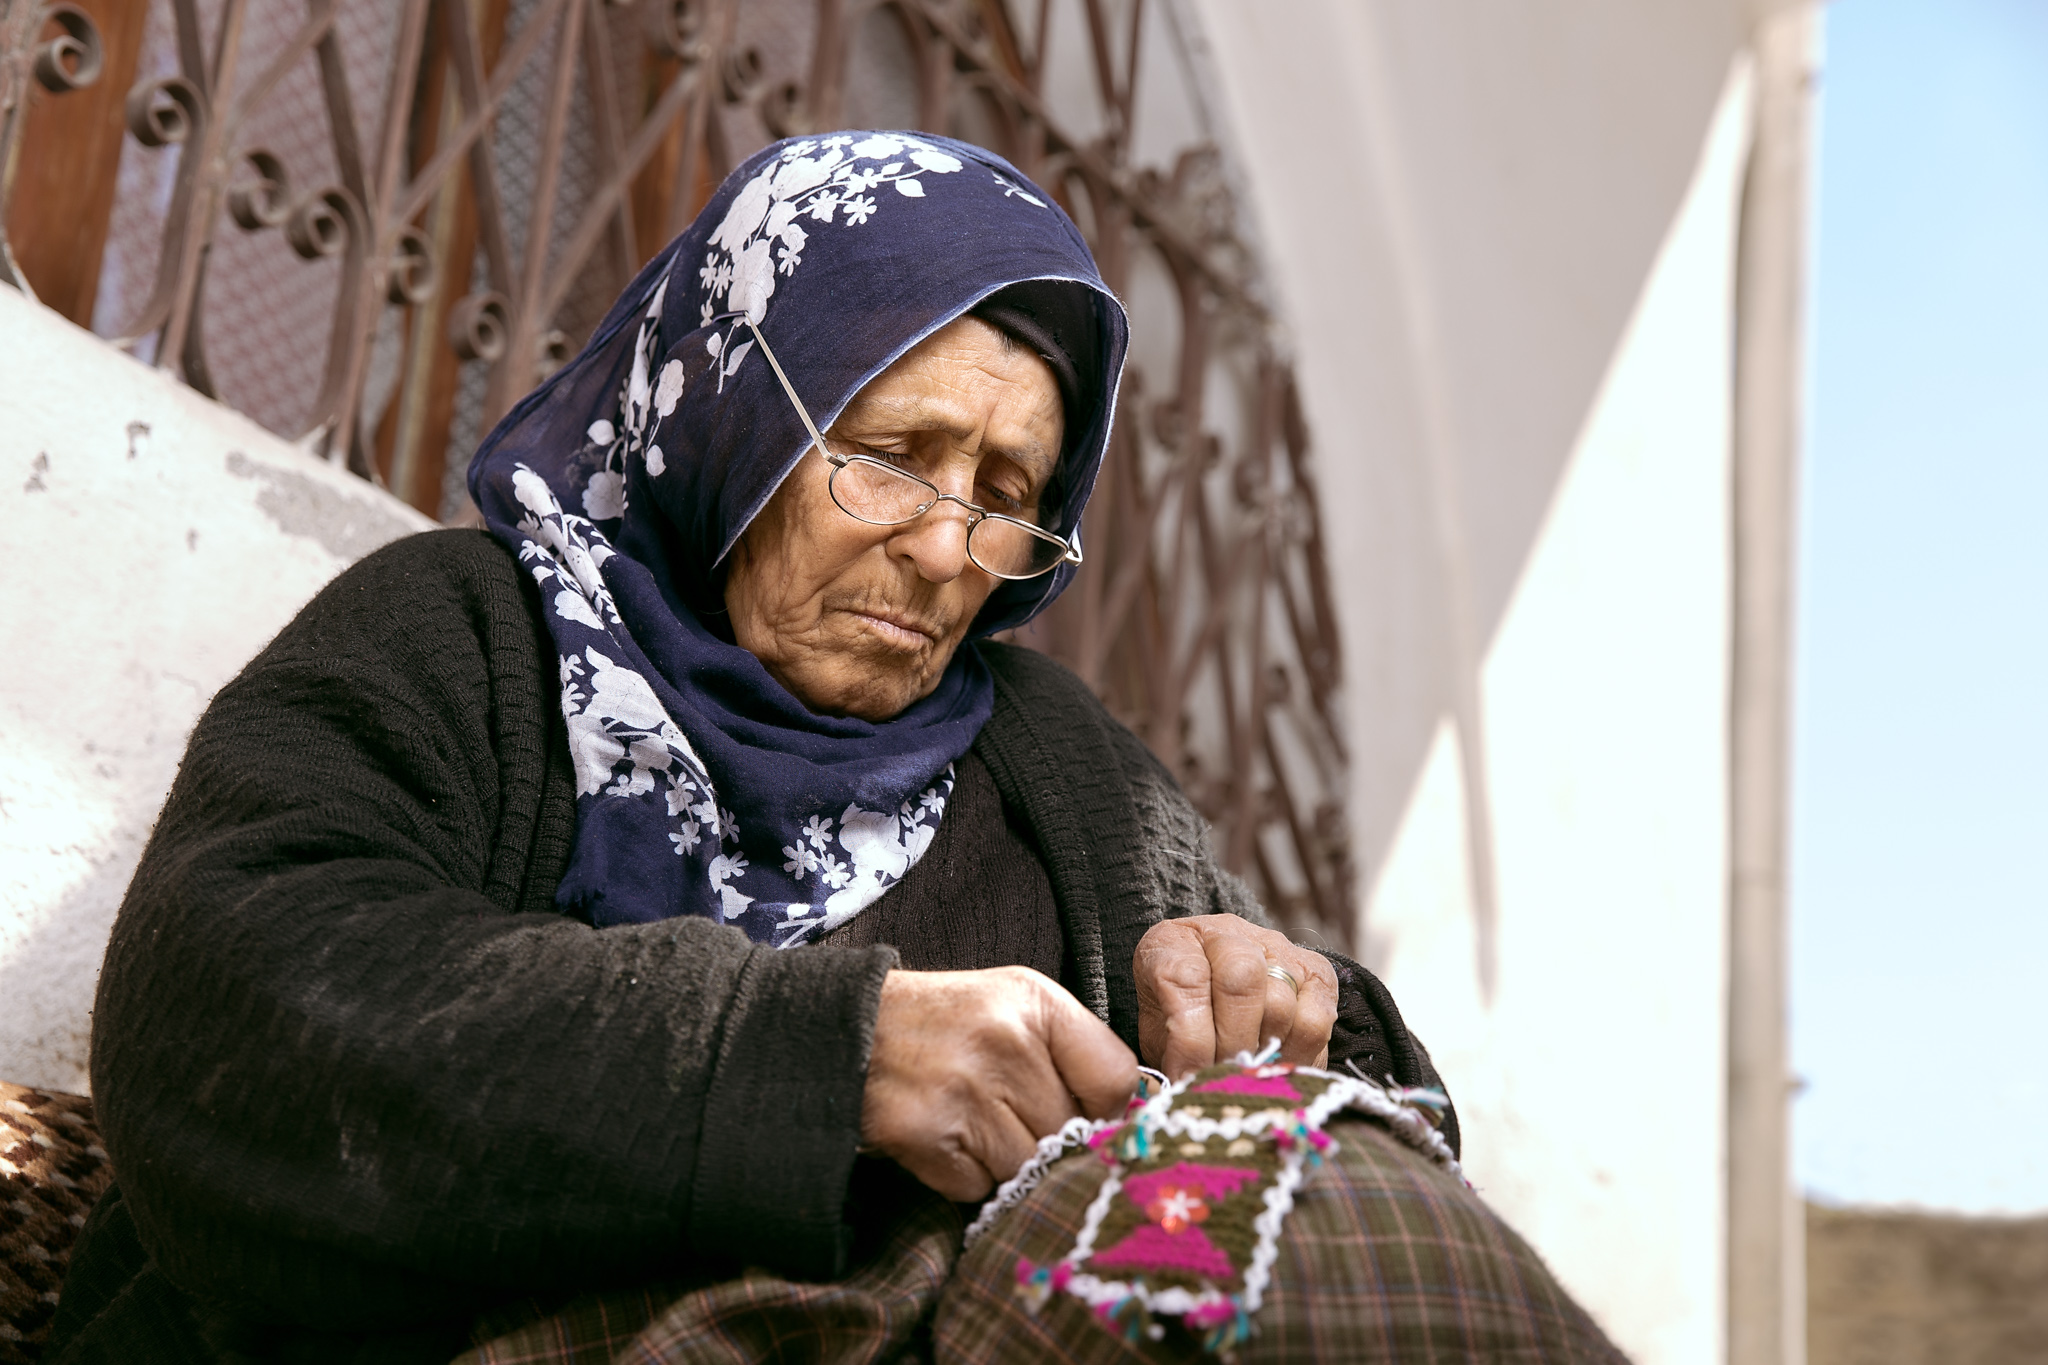 avanos_perfectstrangers-4434-old-lady-sewing-in-alleyway.jpg